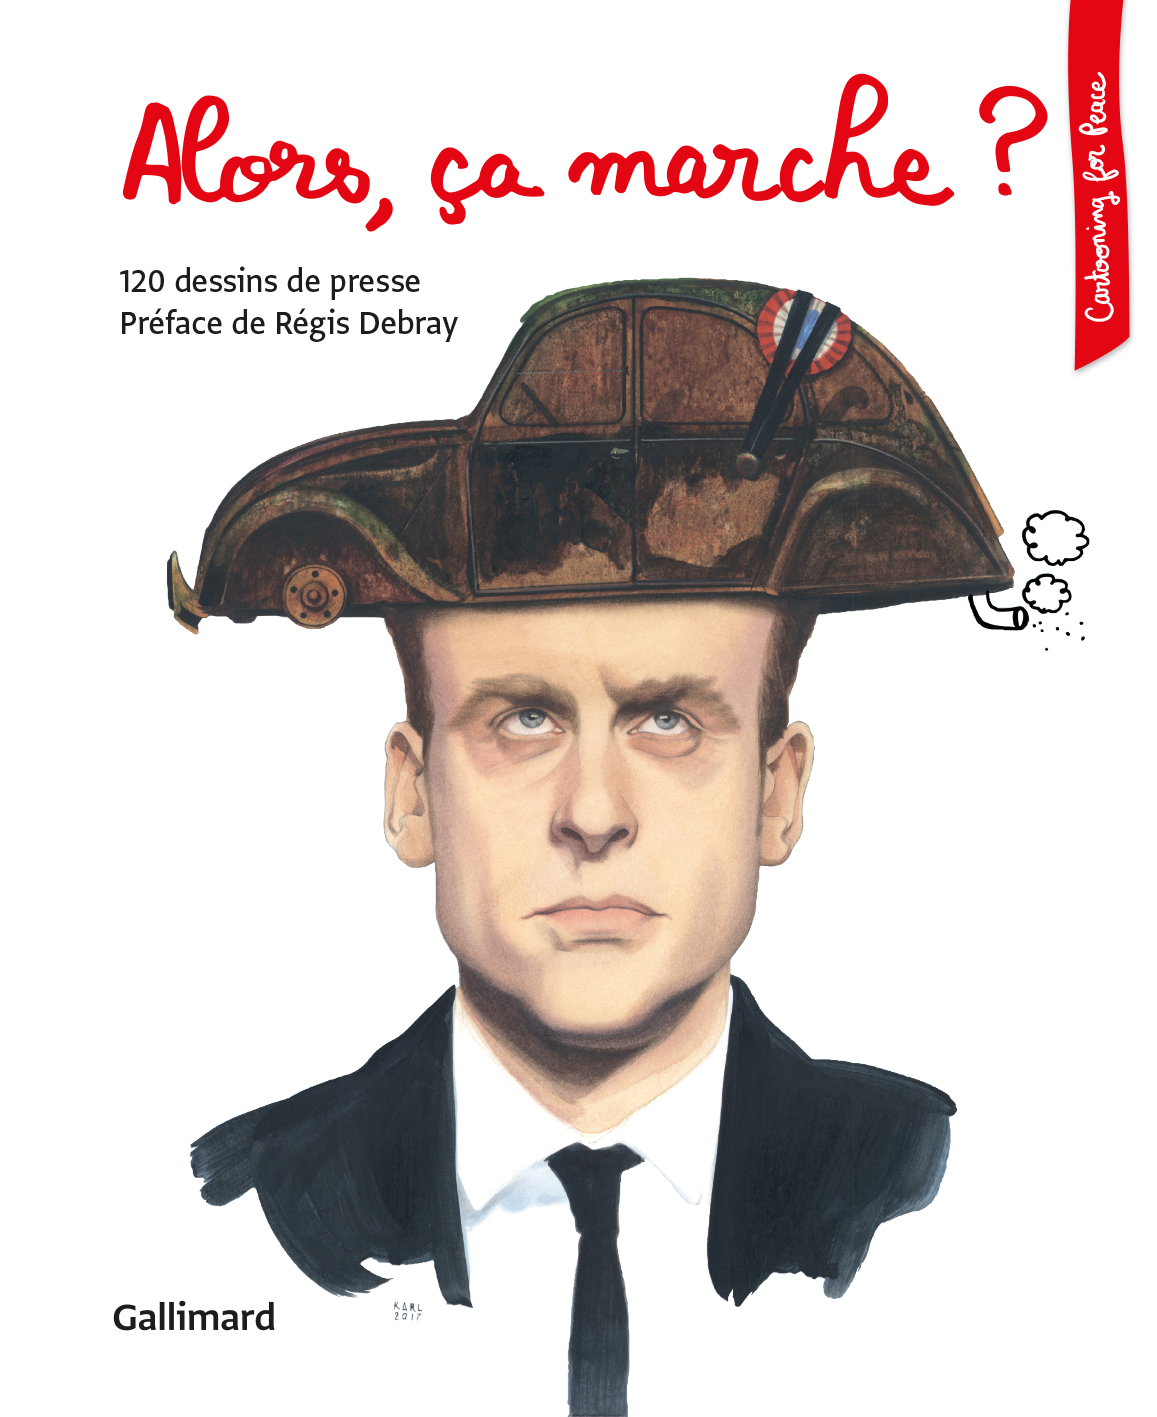 Couverture - Karl (Belgique) © Cartooning for Peace